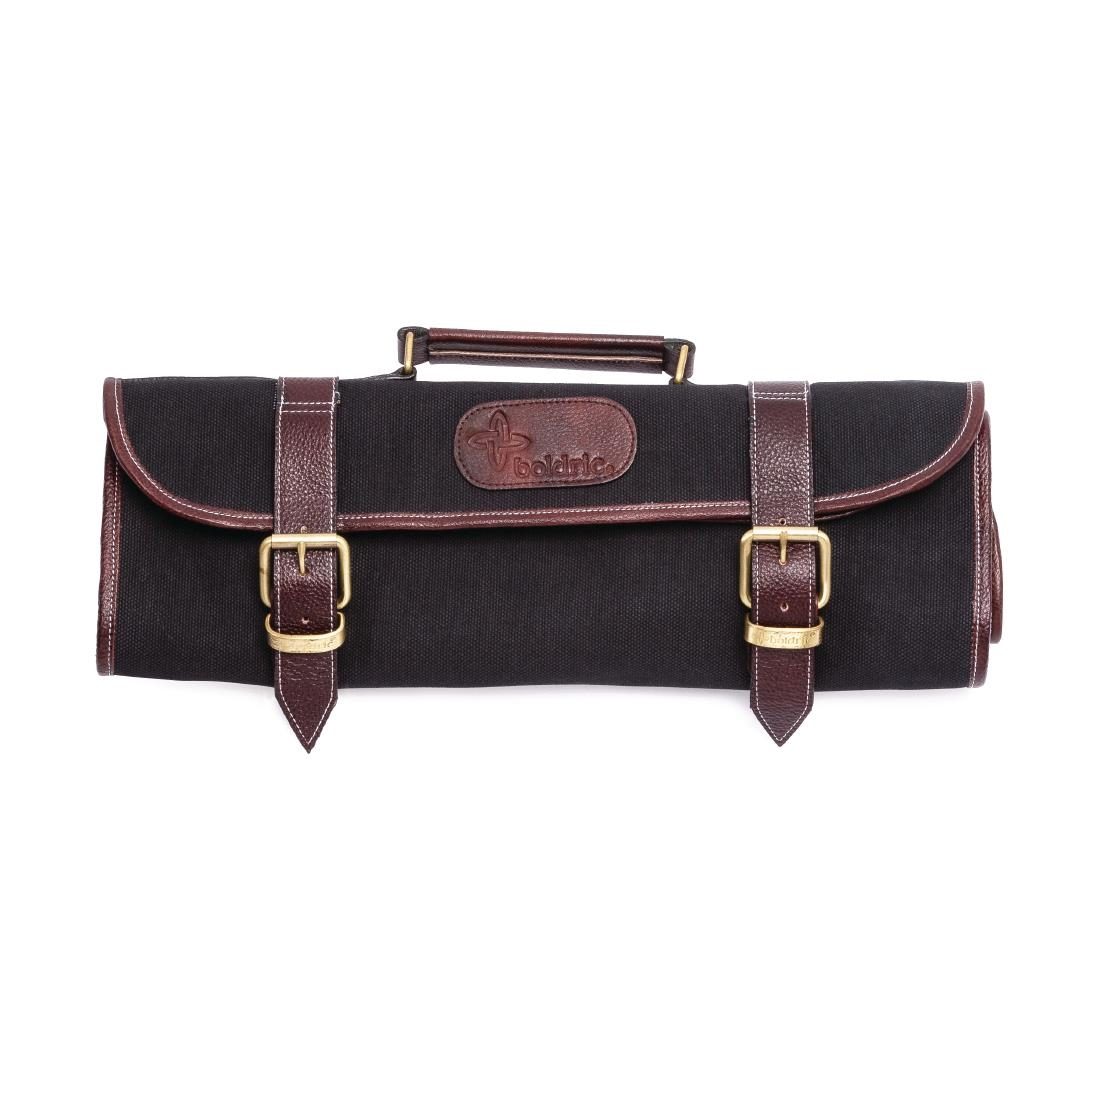 Image of Boldric Canvas Knife Bag Black 9 Slots